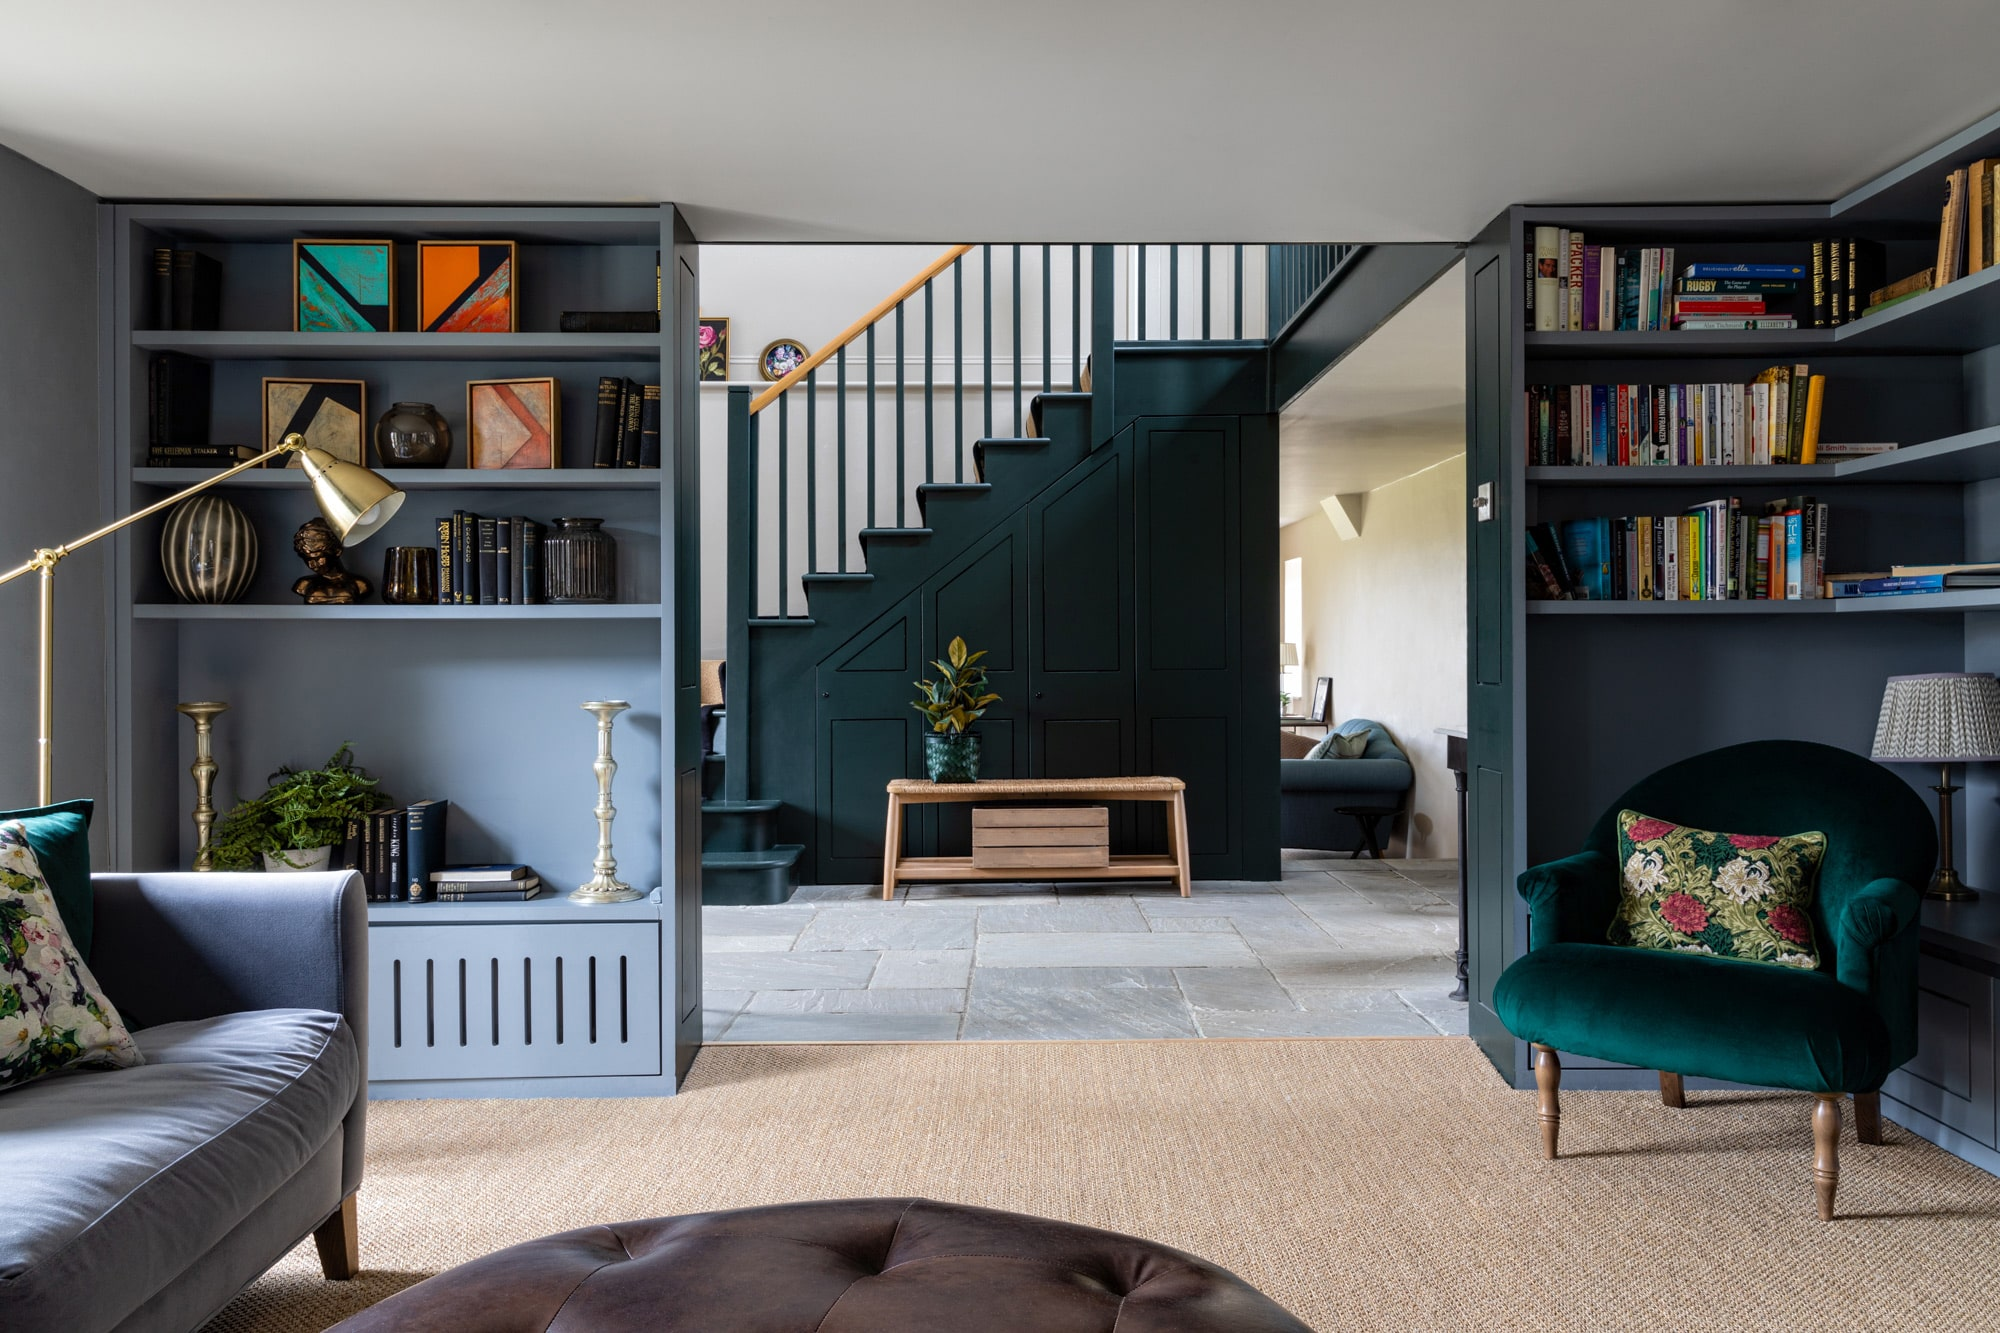 living room photograph: green and blue shelving units with books and accessories; round soft table; room overlooks a dark green straircase